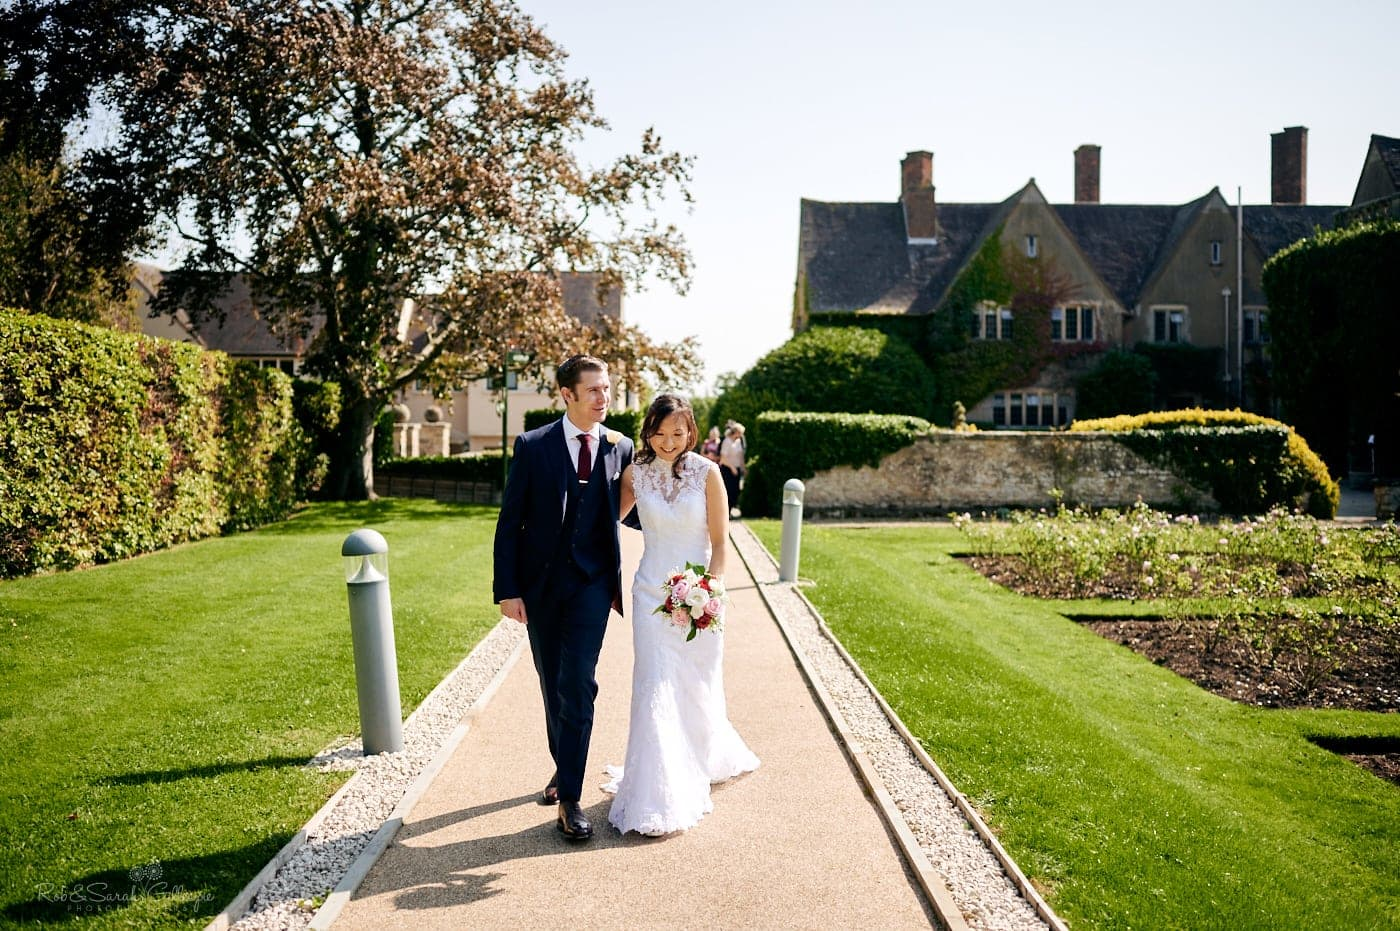 Bride and groom walk through grounds at Mallory Court small wedding